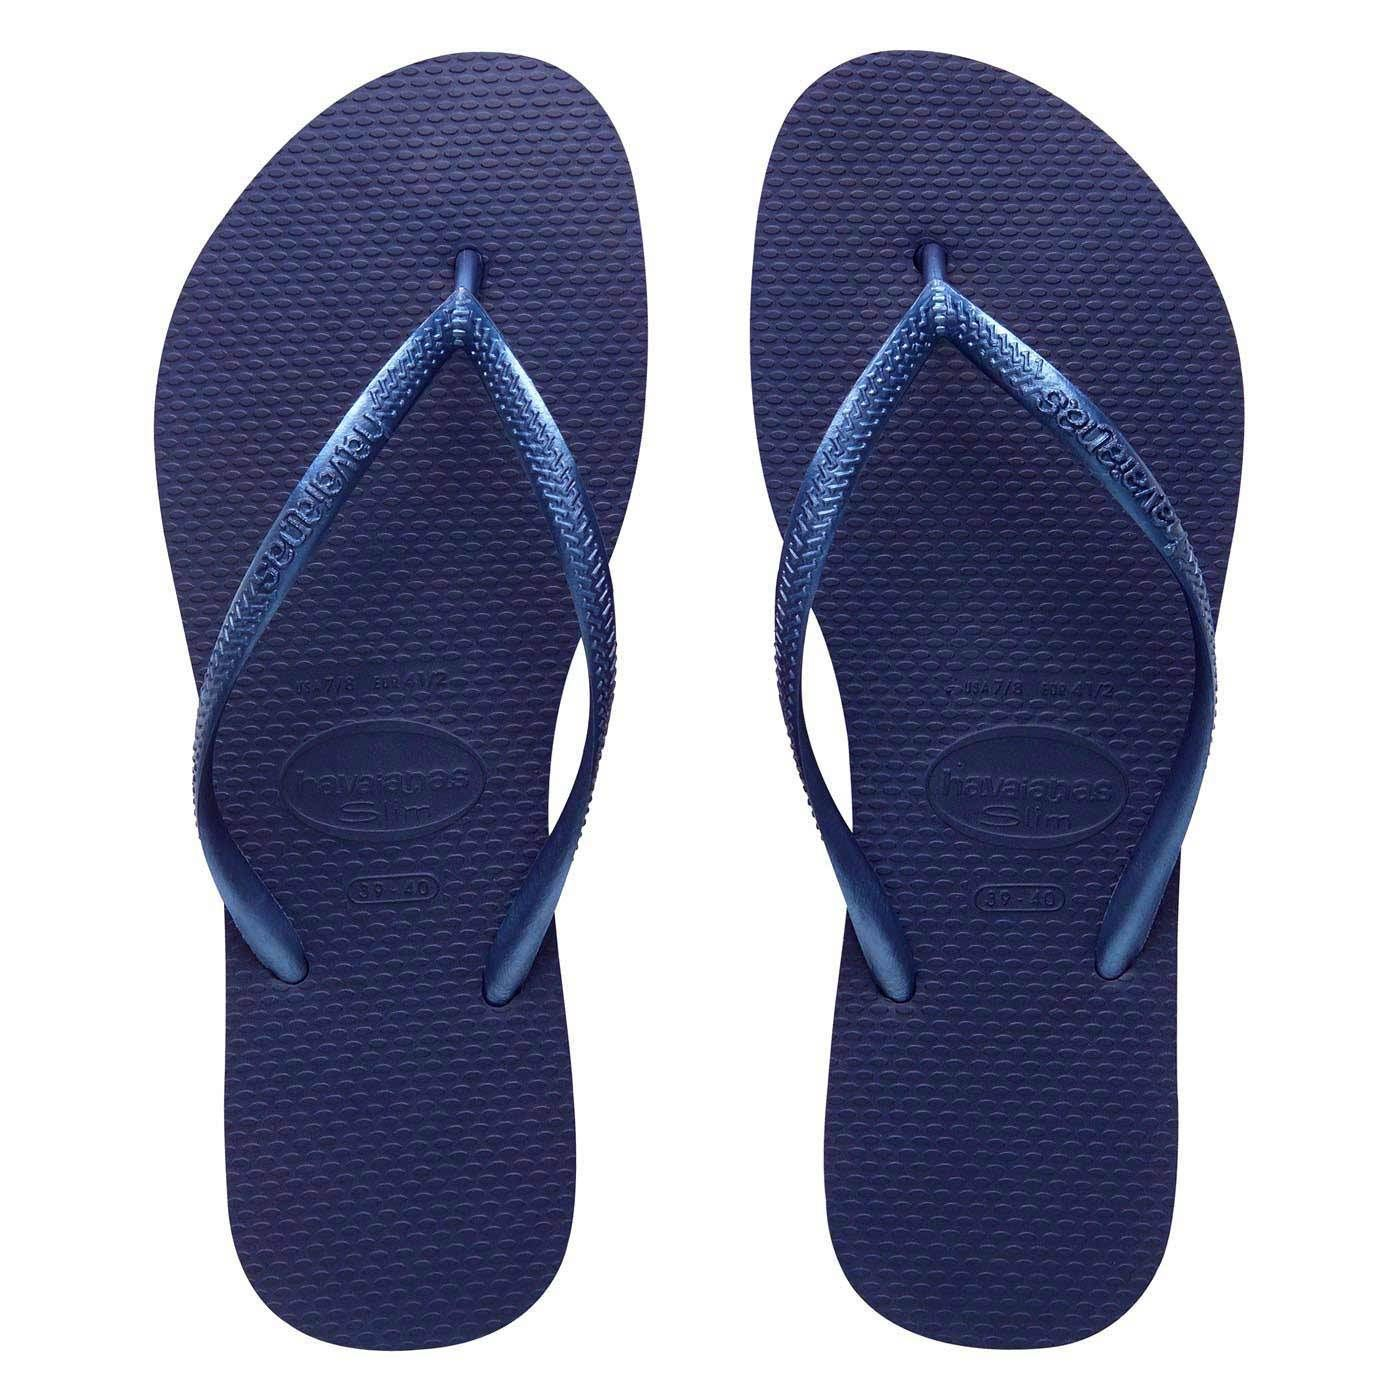 795a1d40f95244 Havaianas Slim Brazil Women s Flip Flops Blue Brand new All sizes